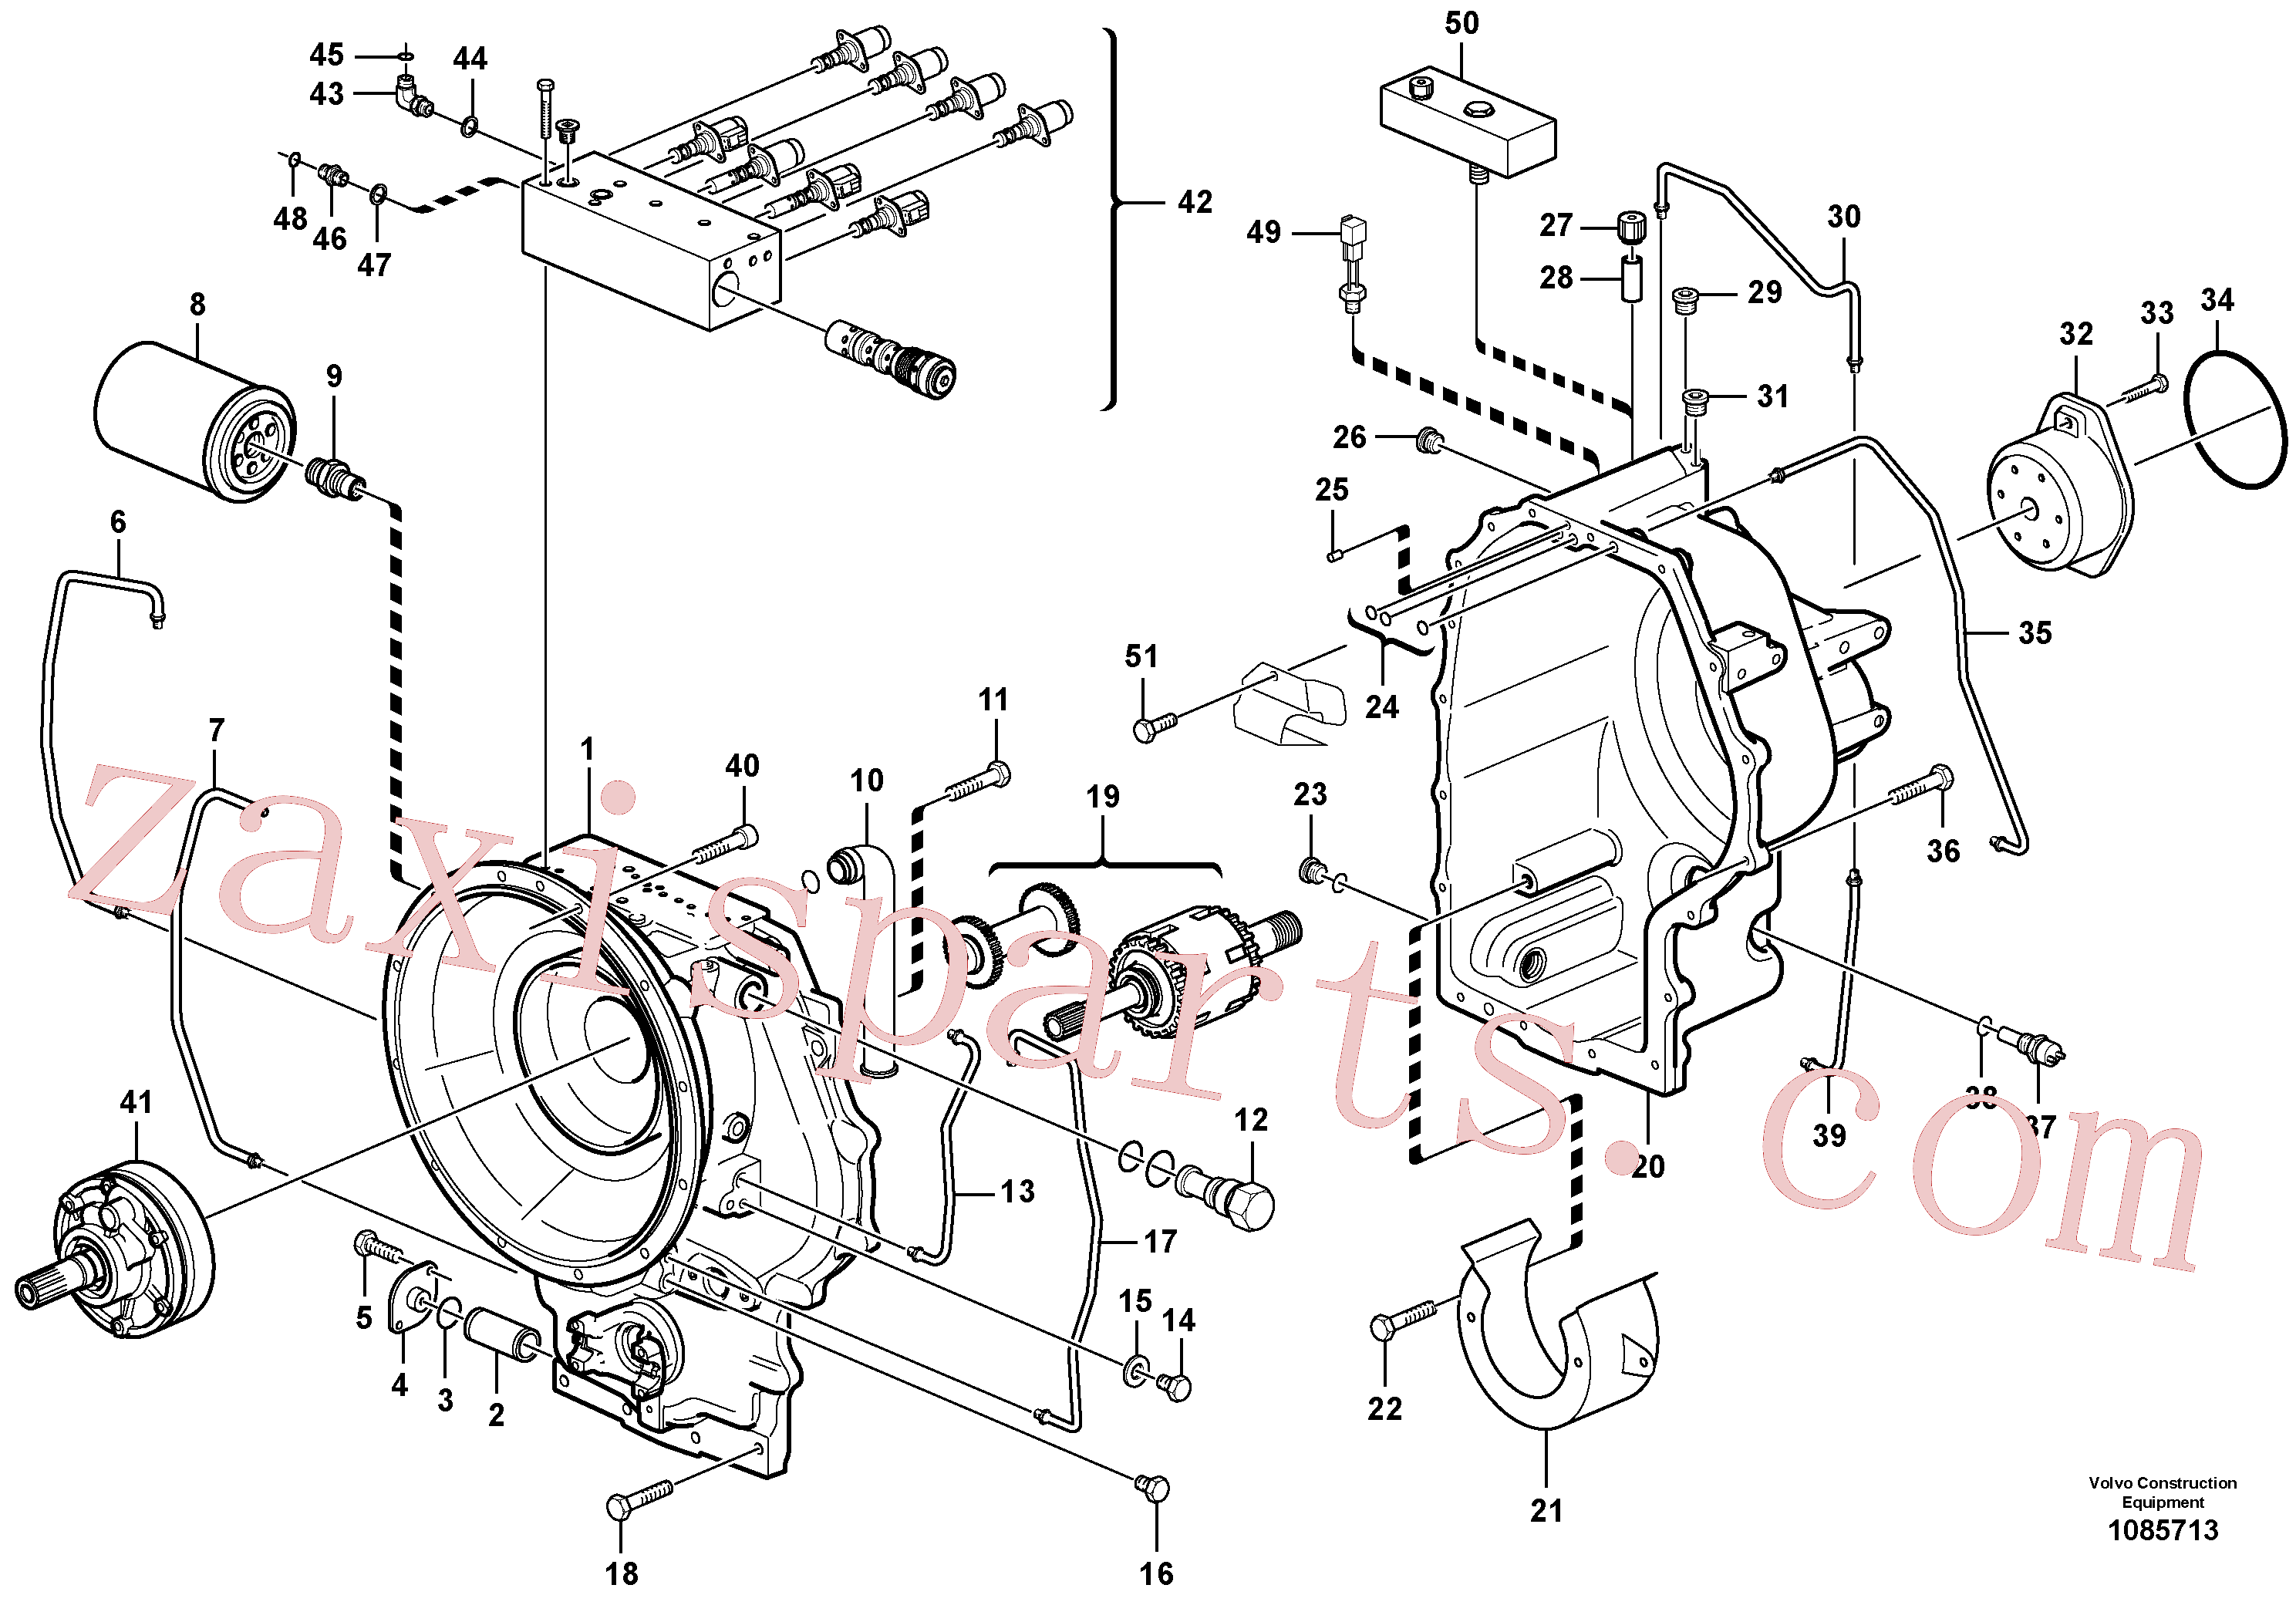 SA9324-11011 for Volvo Hydraulic transmission with fitting parts(1085713 assembly)